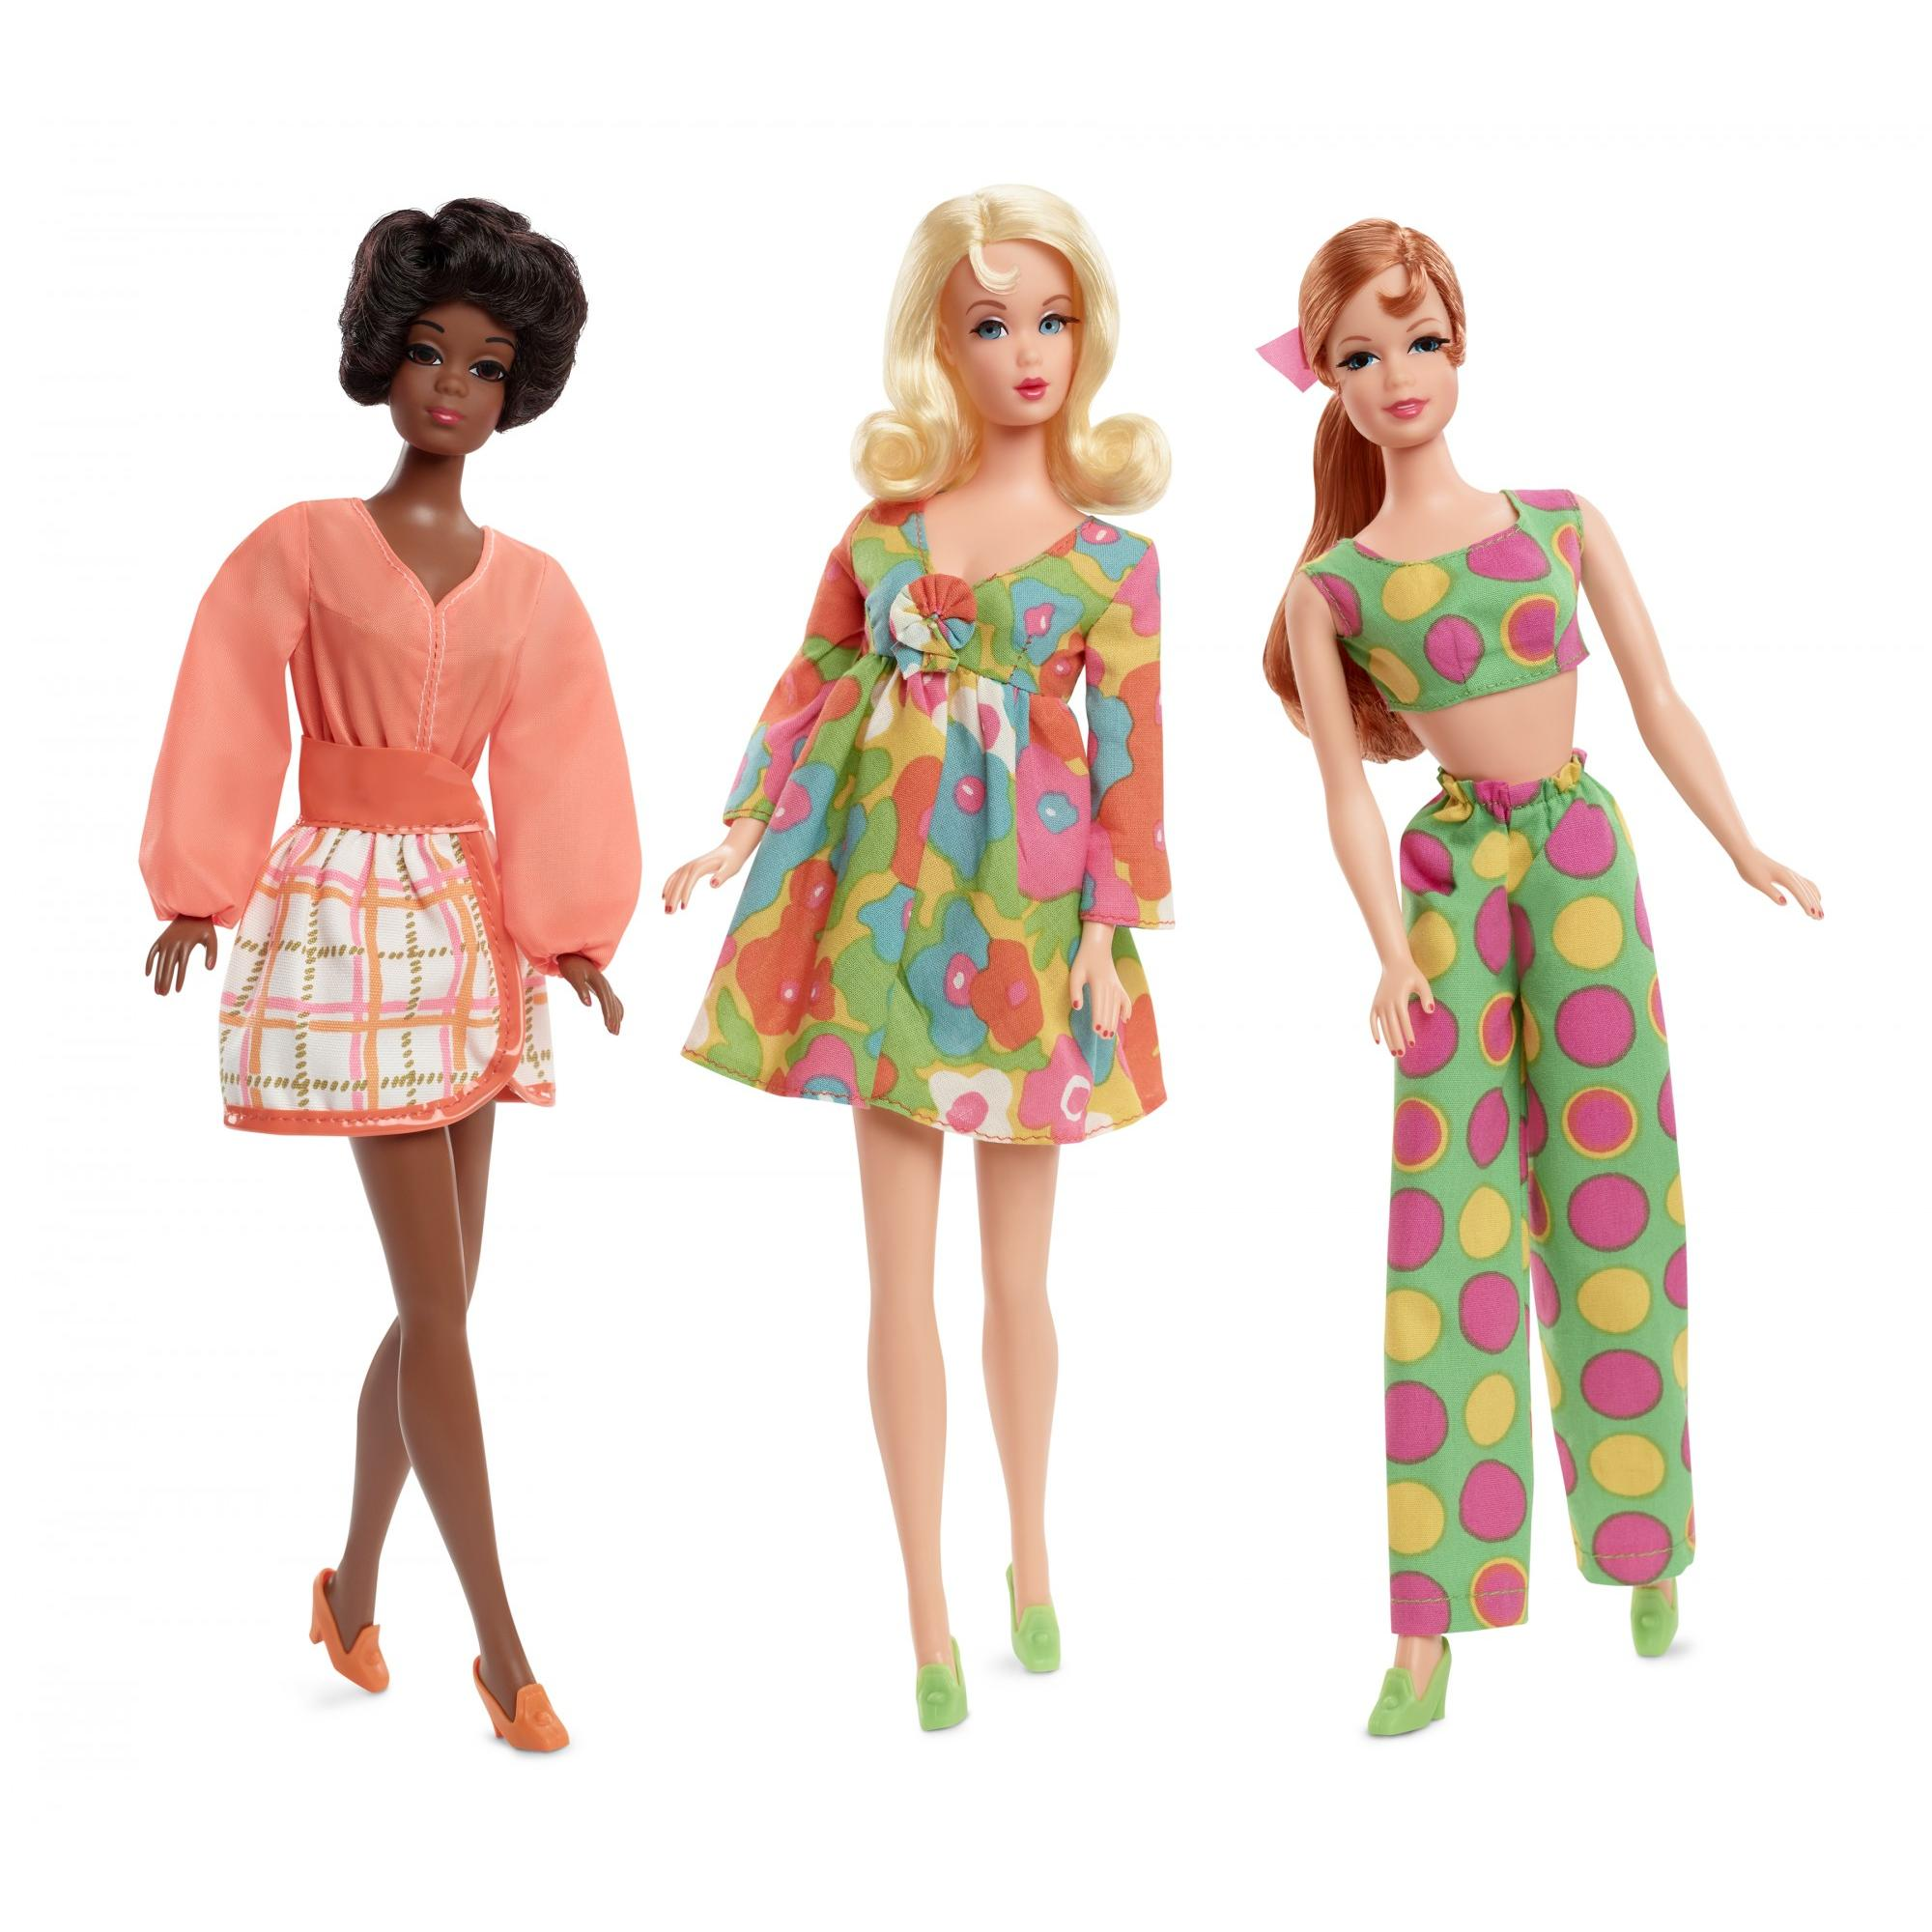 Barbie Mod Friends Gift Set with 3 Dolls in Retro Looks by Mattel